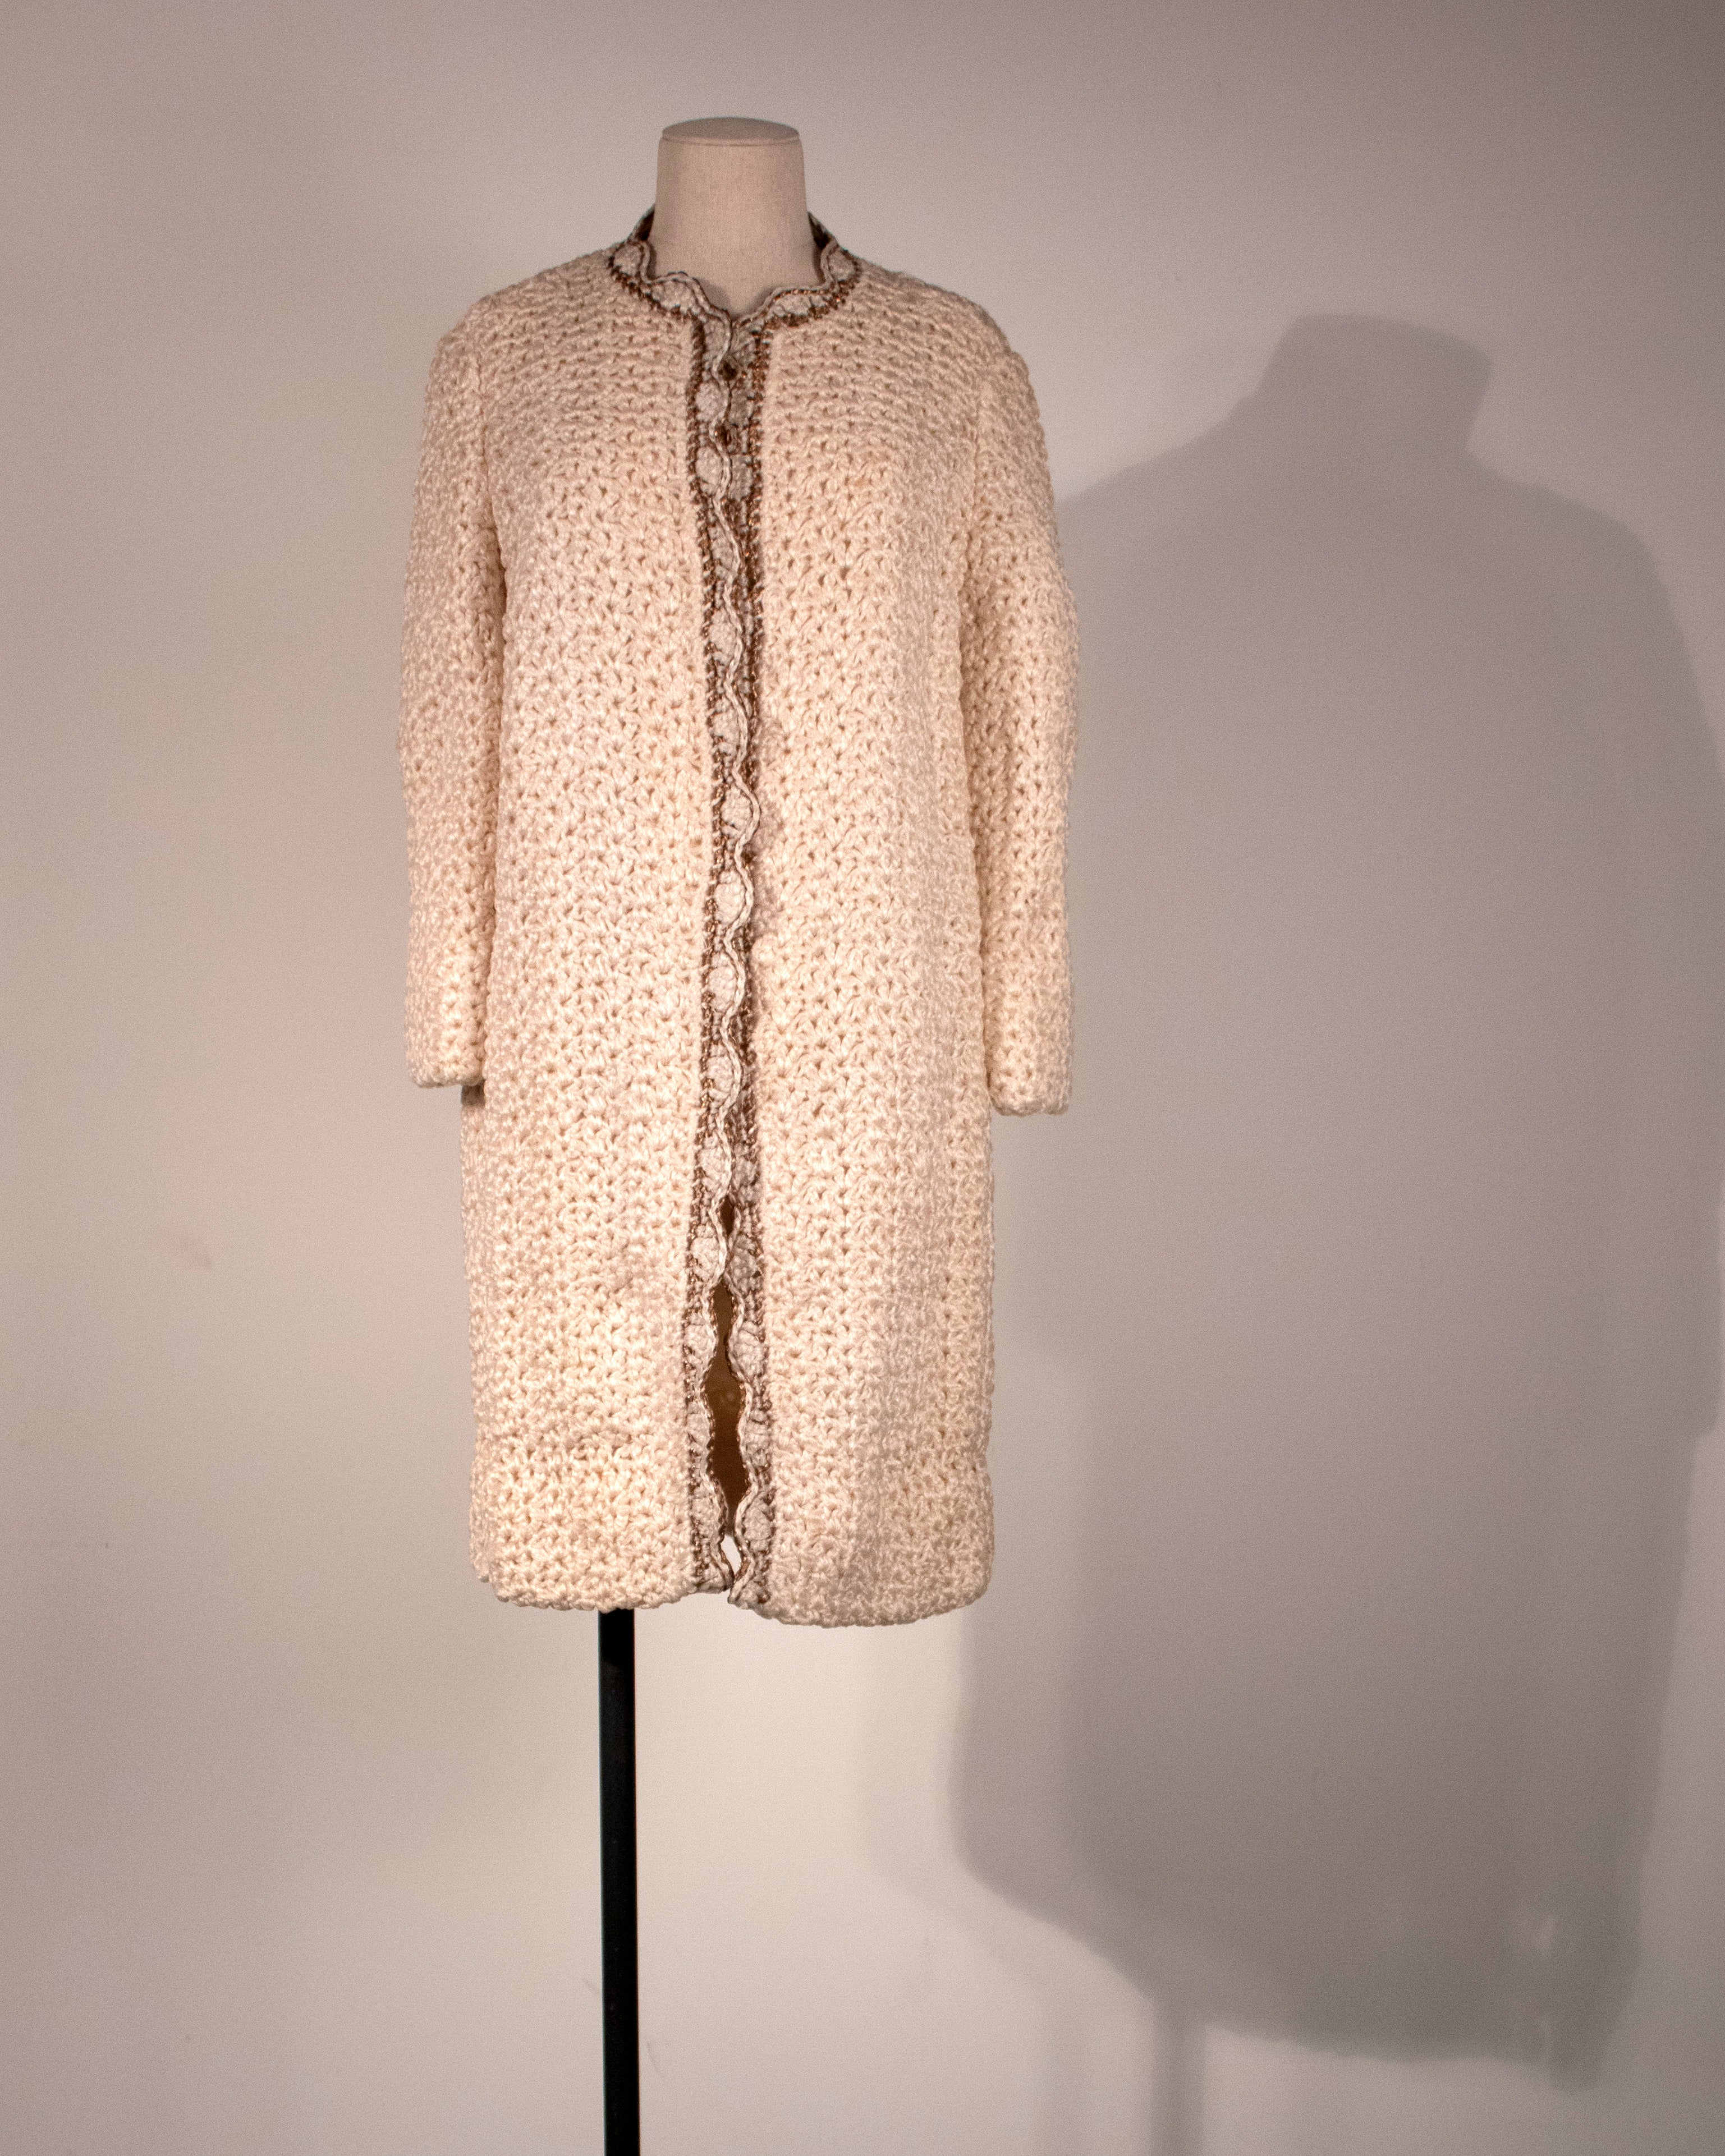 Christian Dior Colifichets cream knotted jacket